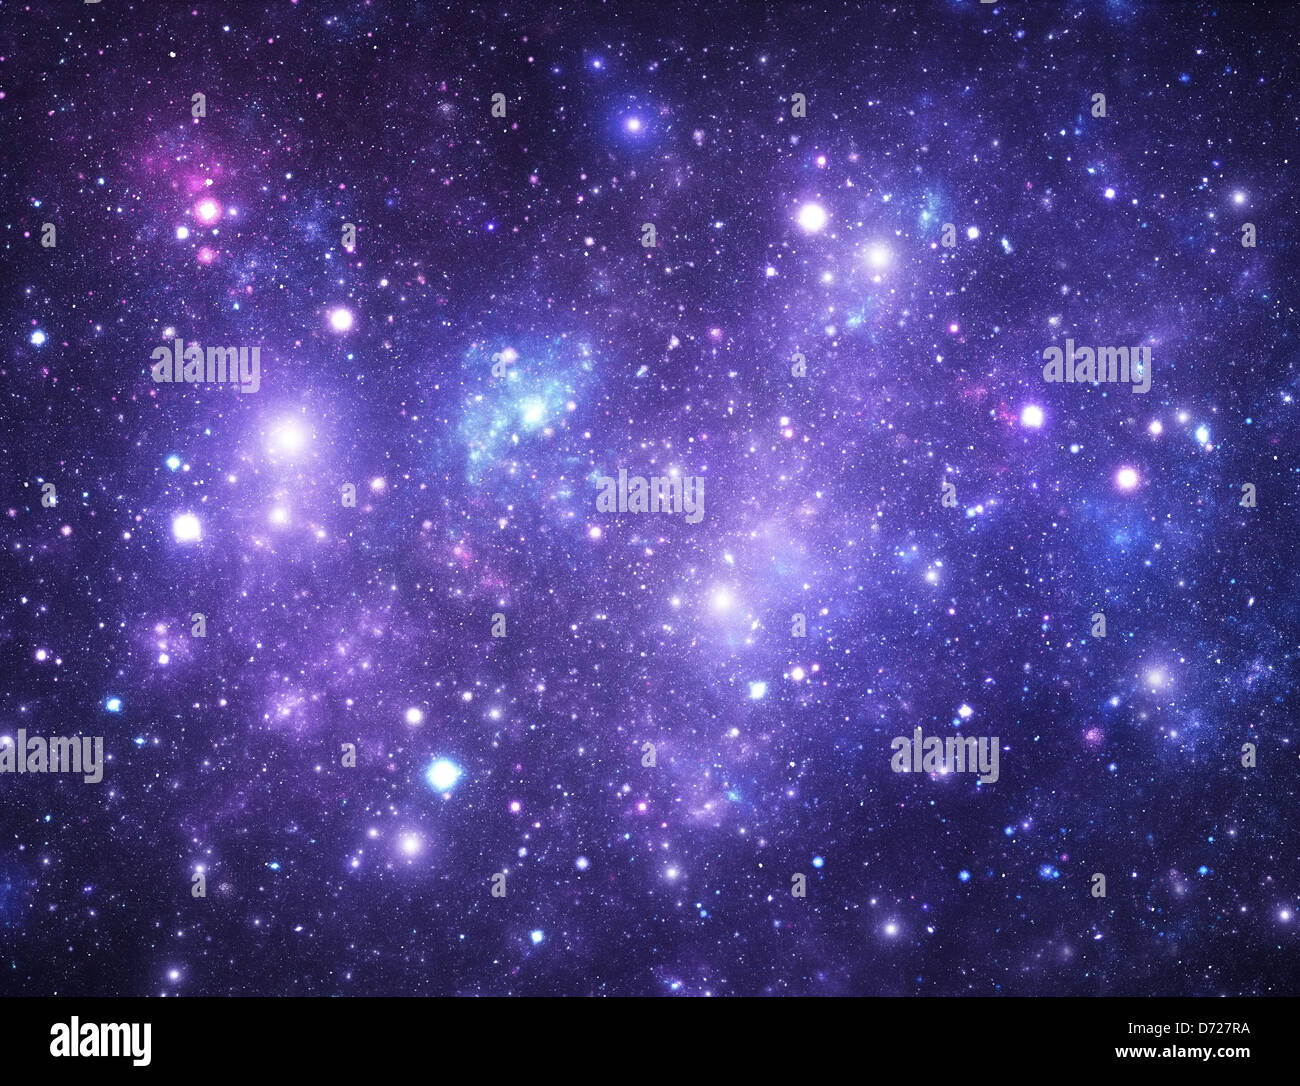 Bright space galaxy background Stock Photo Royalty Free Image